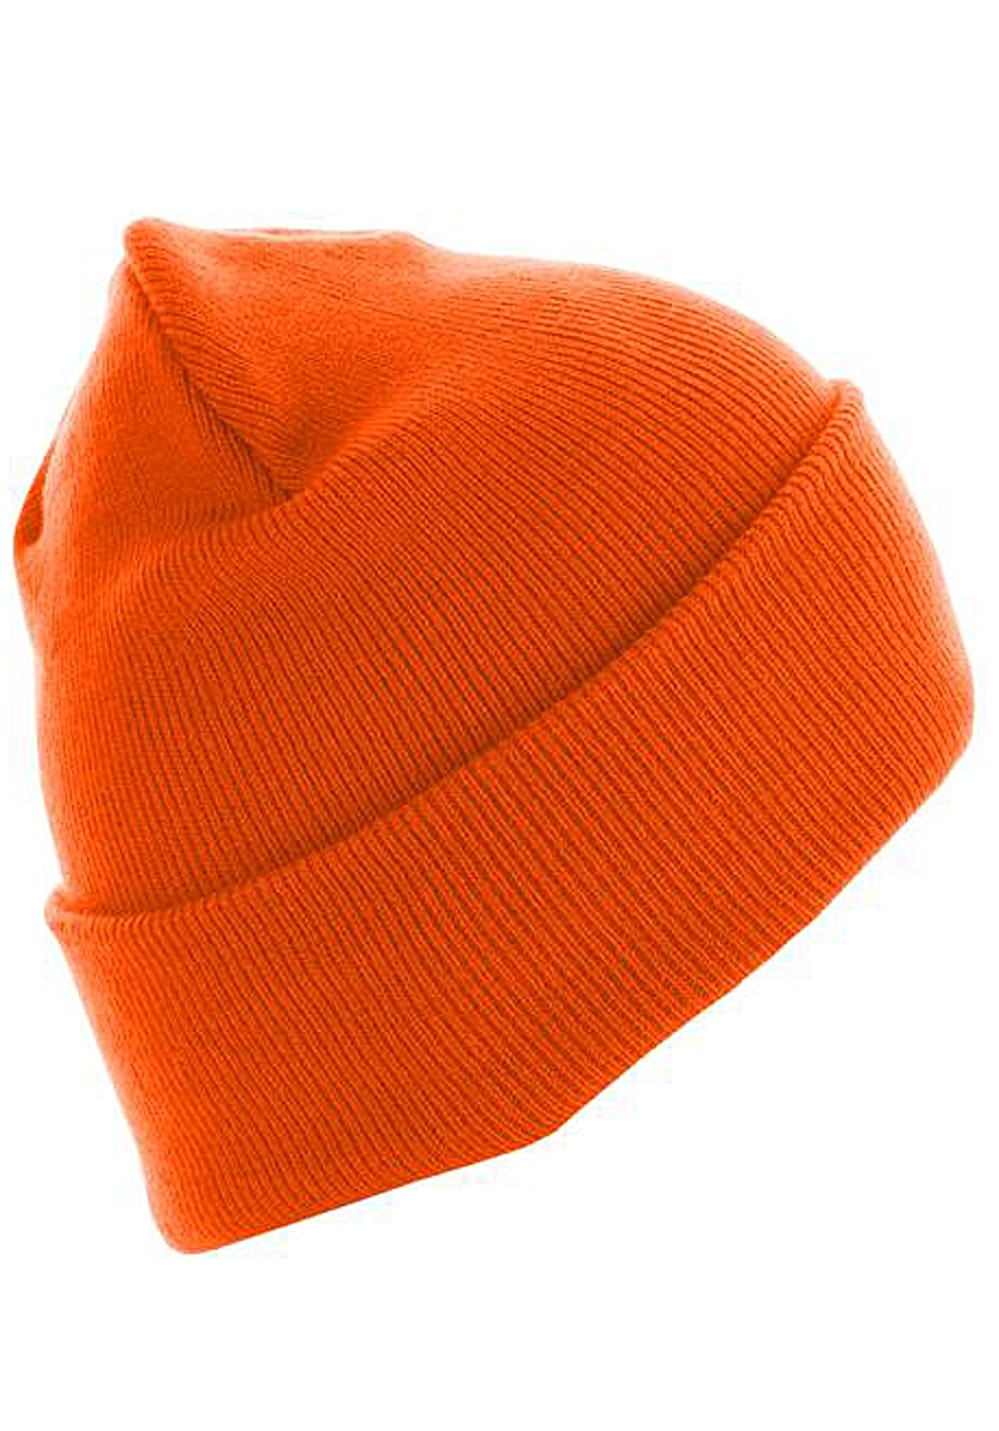 MSTRDS Beanie Basic Flap Long Version - Mütze - Orange - Planet Sports 5036e7e14ab